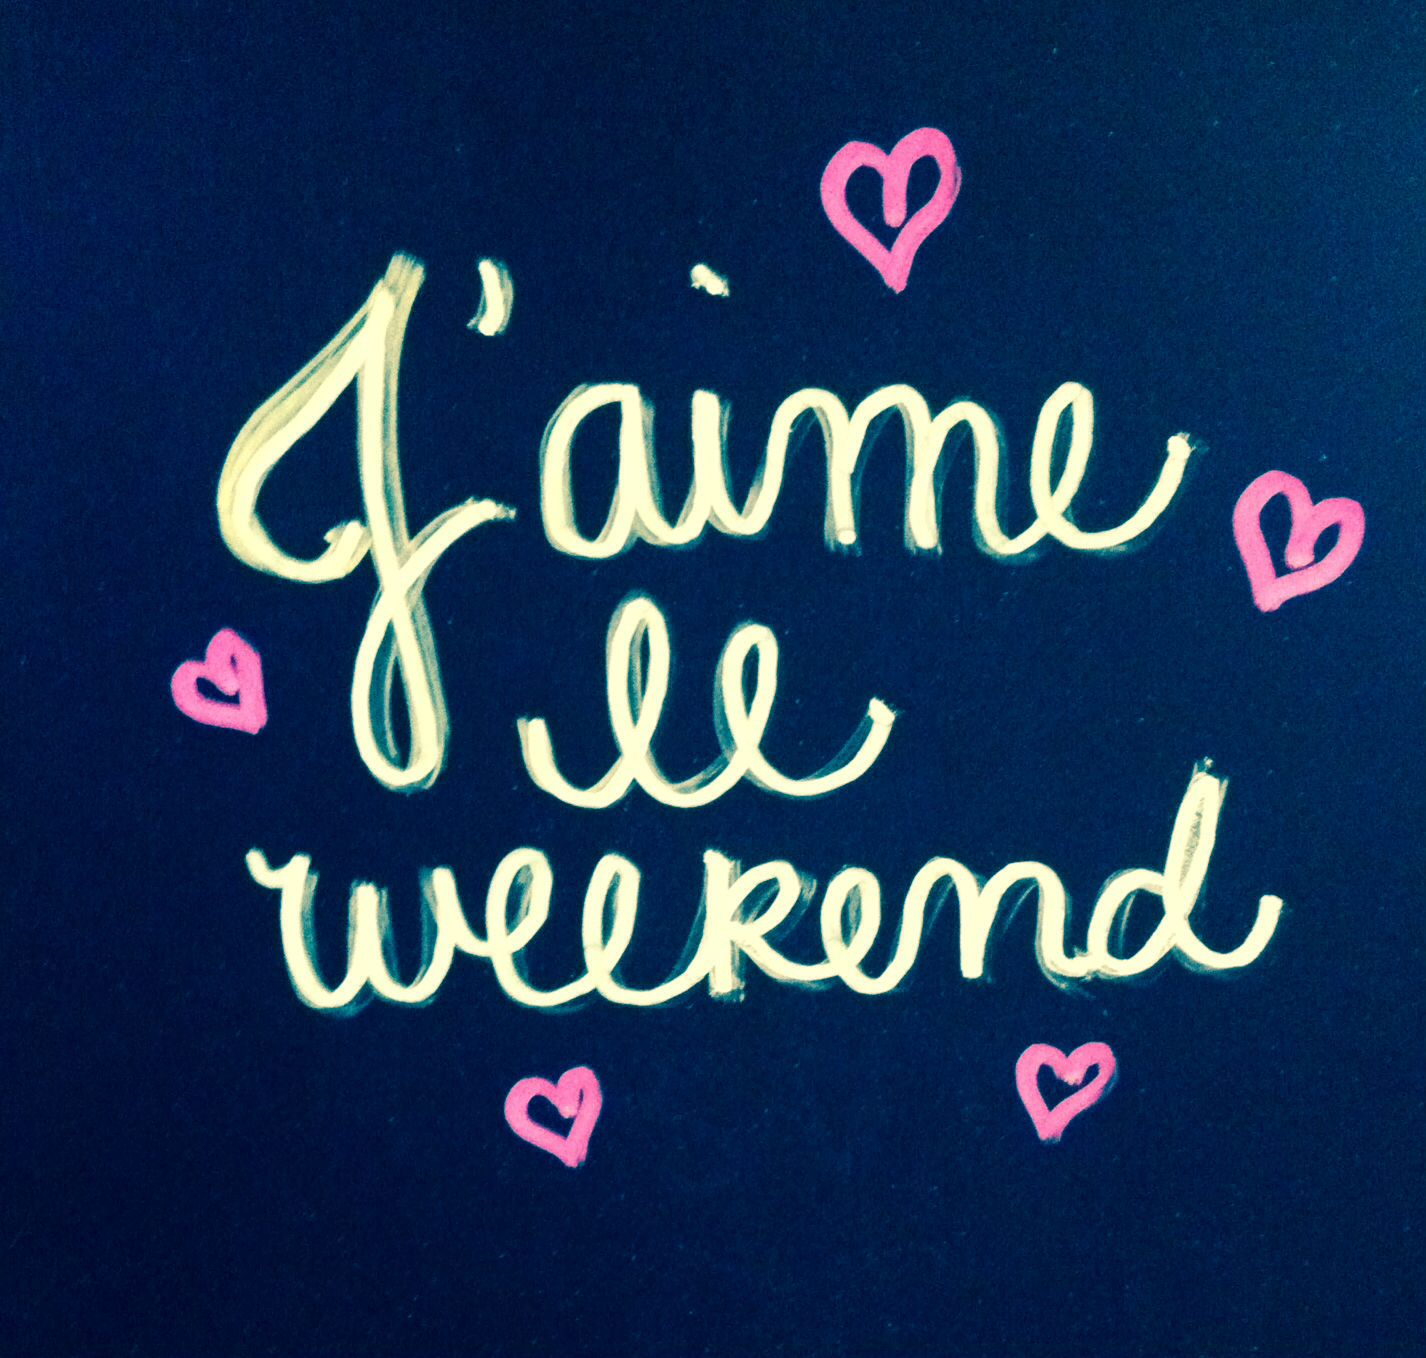 I love the weekend! quote